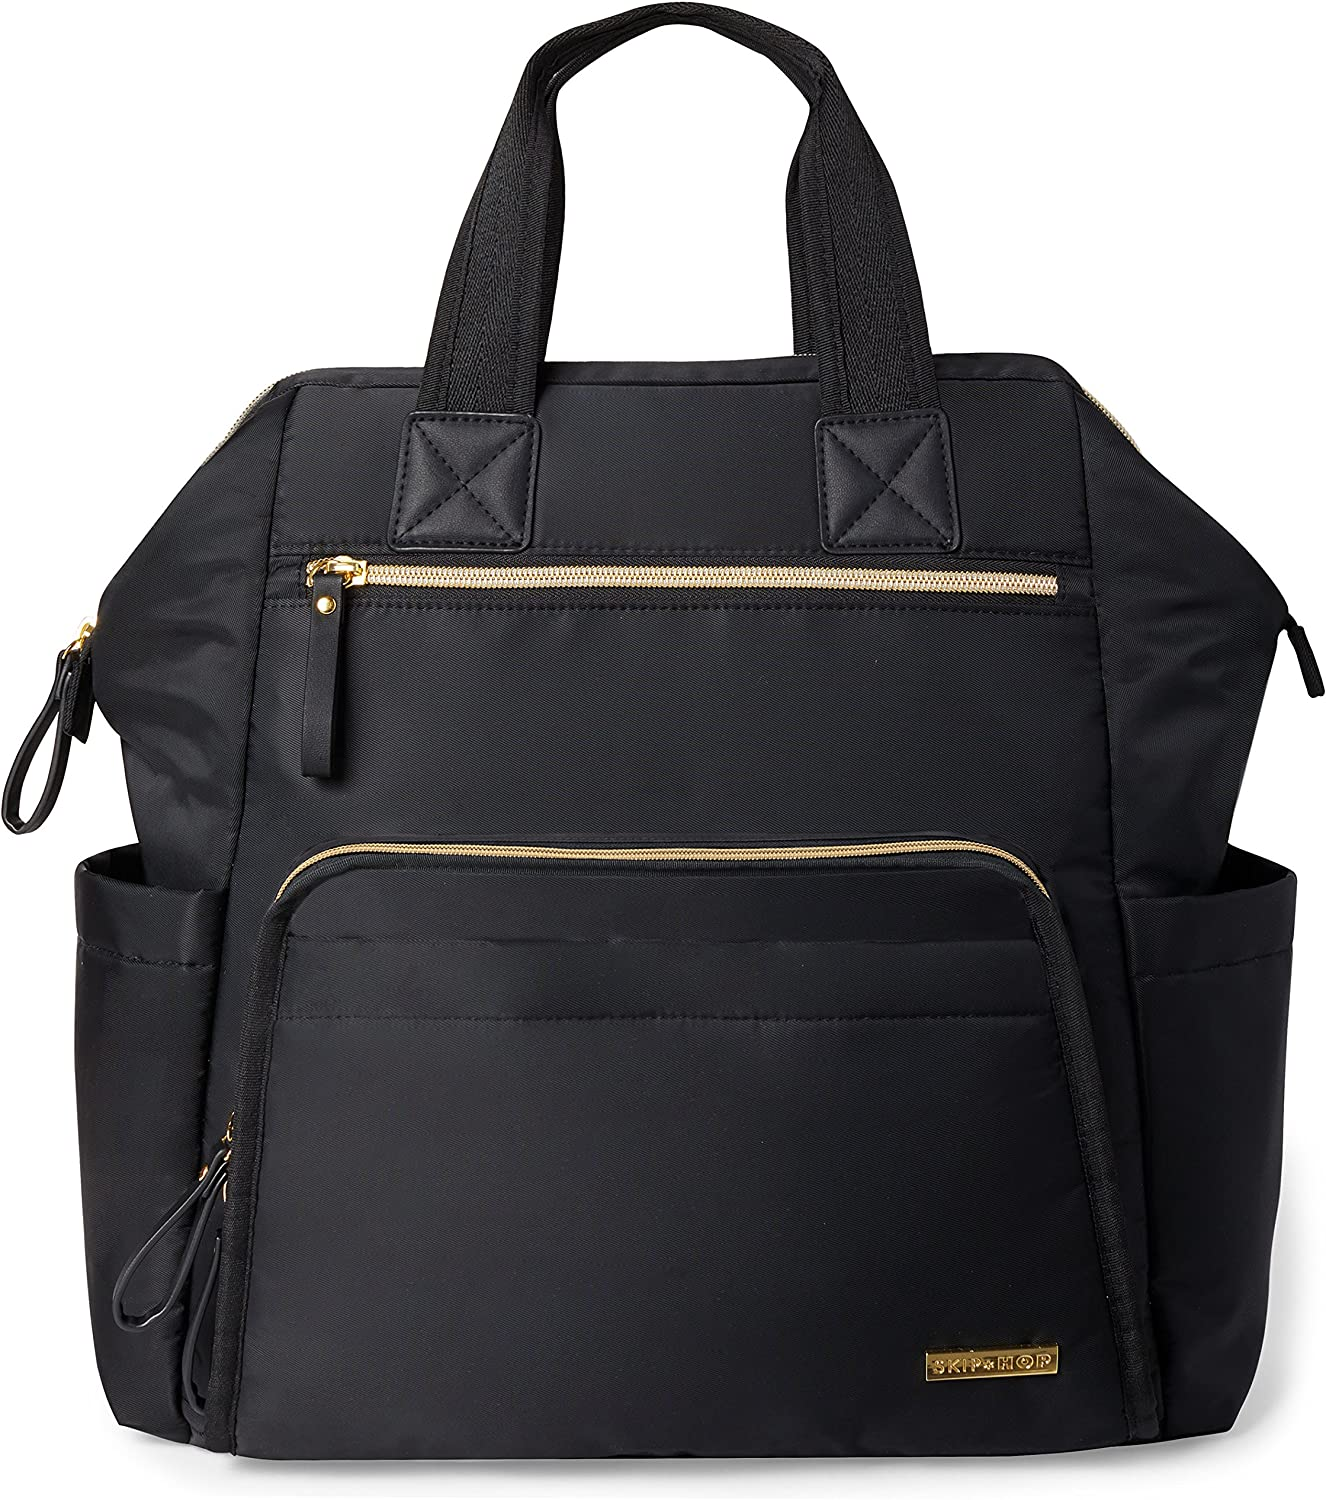 Skip Hop Diaper Bag Backpack Mainframe Large Capacity Wide Open Structure Black with Gold Trim